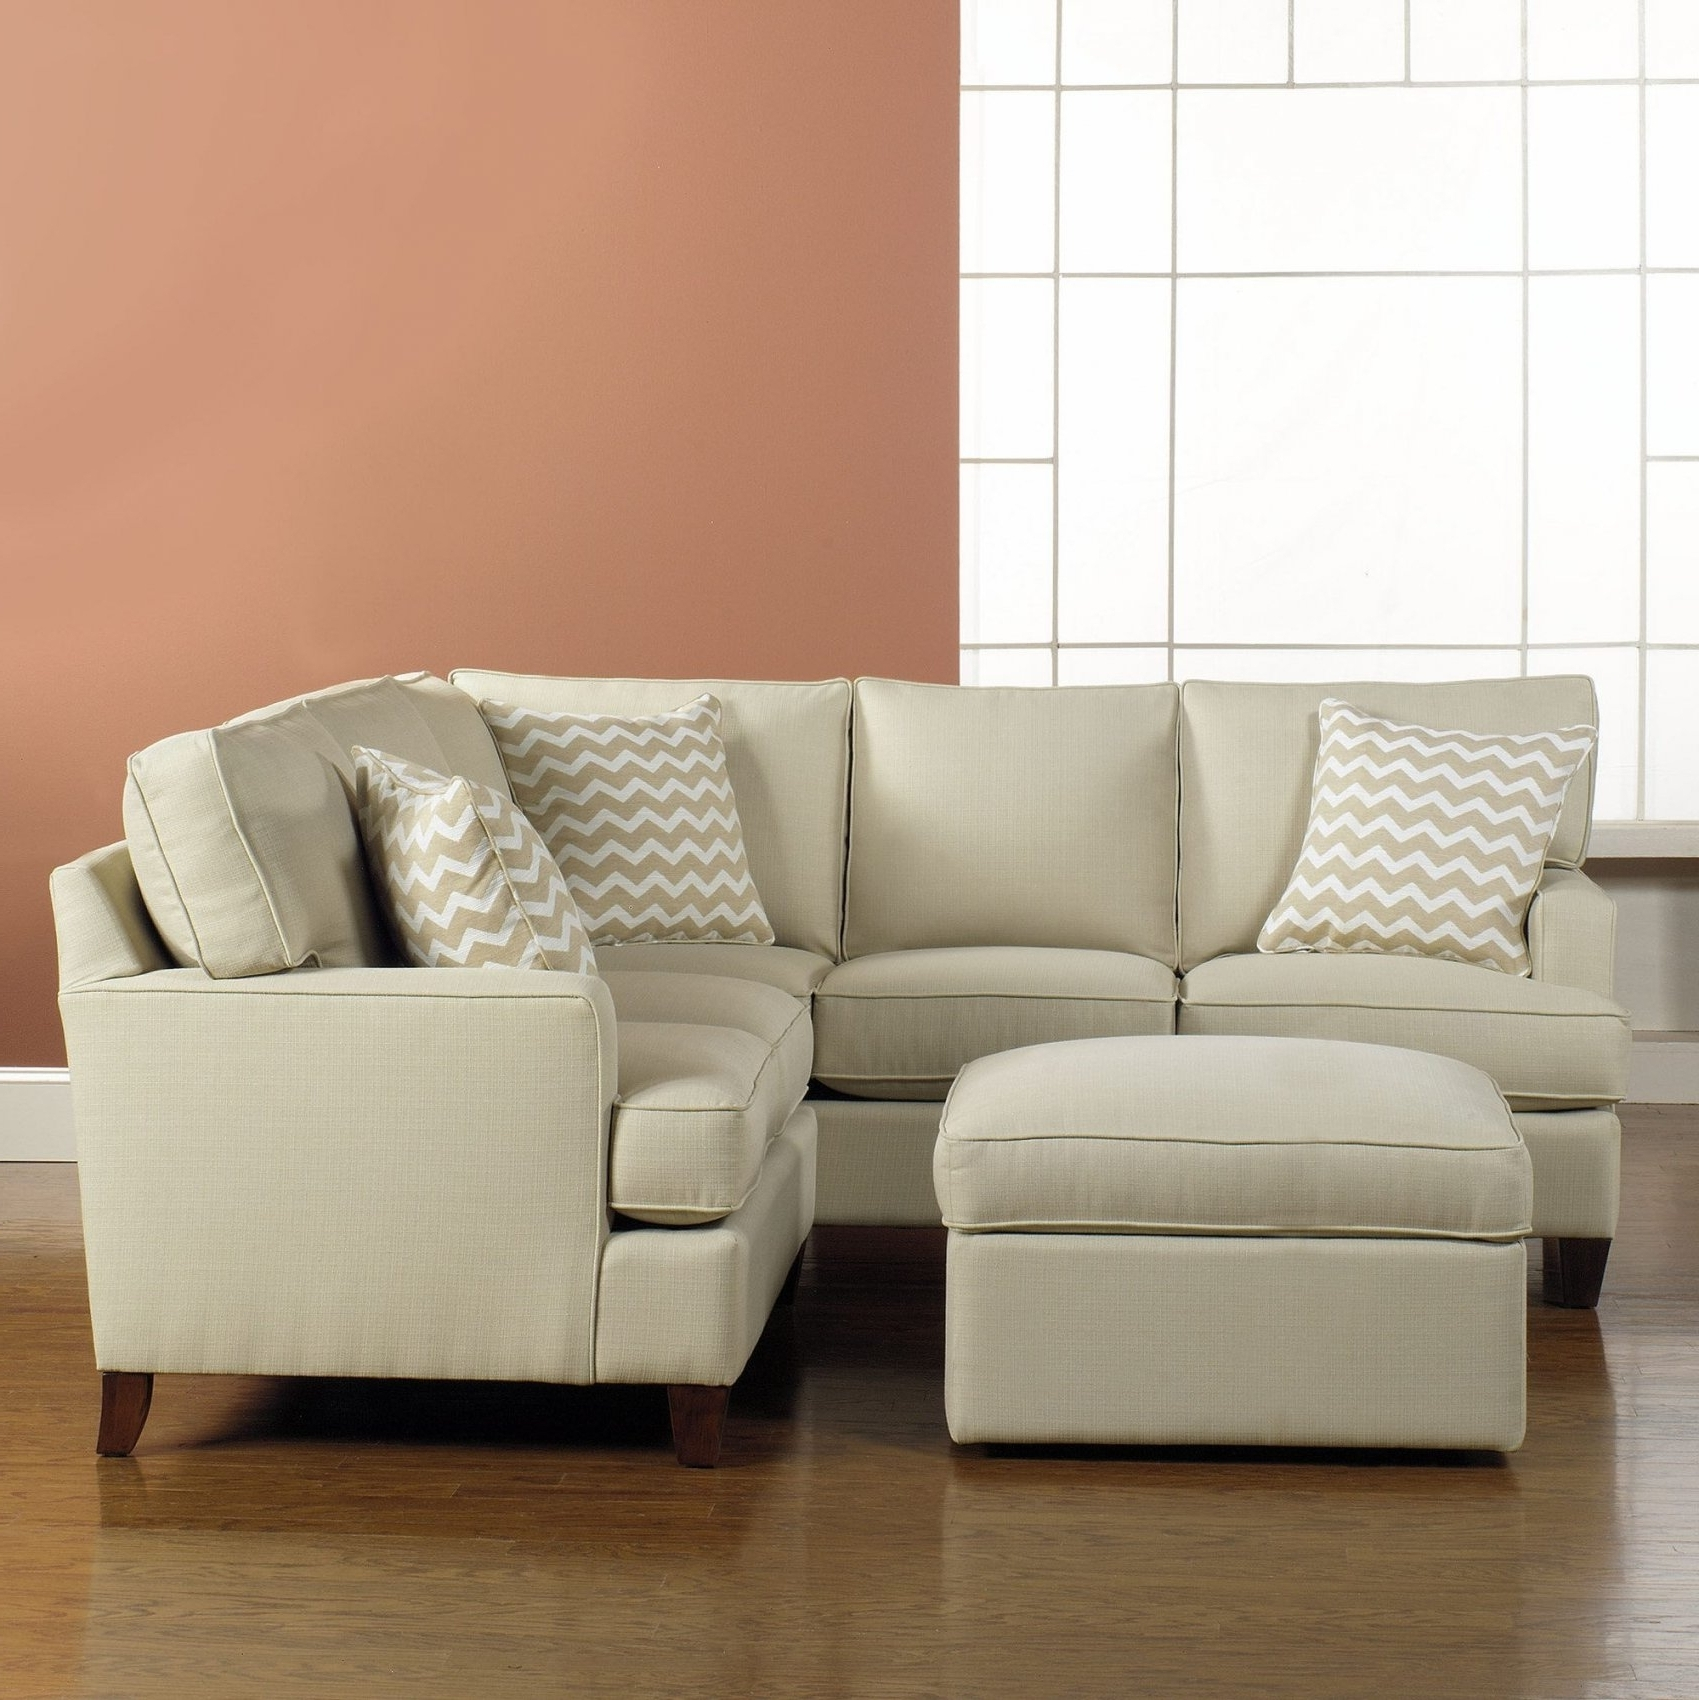 Sectional Sofas For Small Areas Pertaining To 2019 Sectional Sofa For Small Spaces 94 In Living Room Sofa With (View 15 of 20)